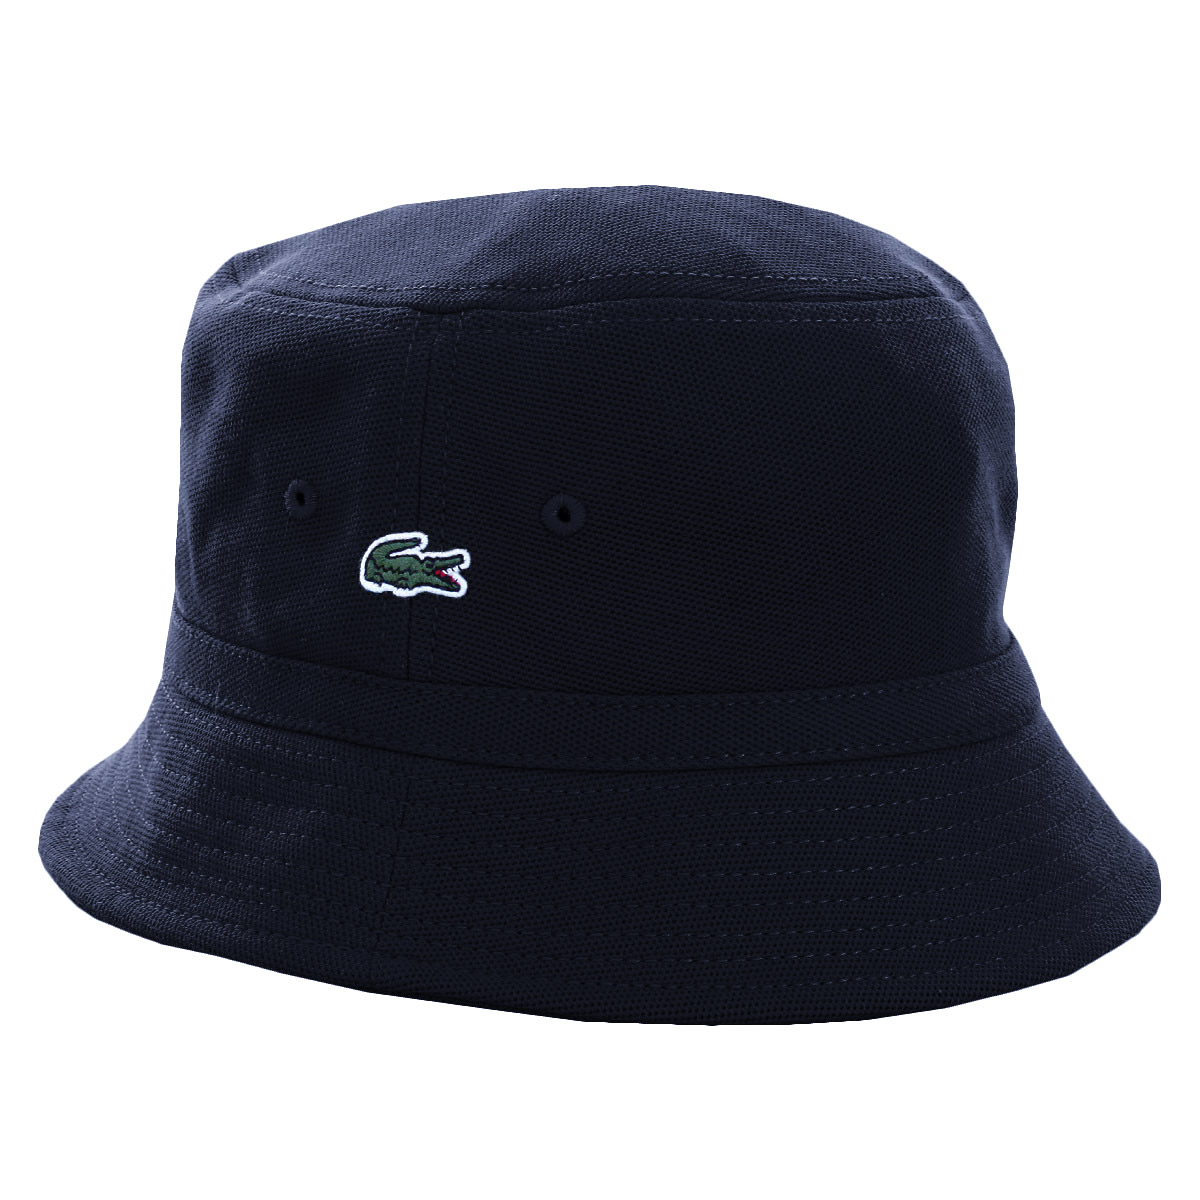 Lacoste 2017 Mens RK8490 Cotton Pique Bucket Hat | eBay